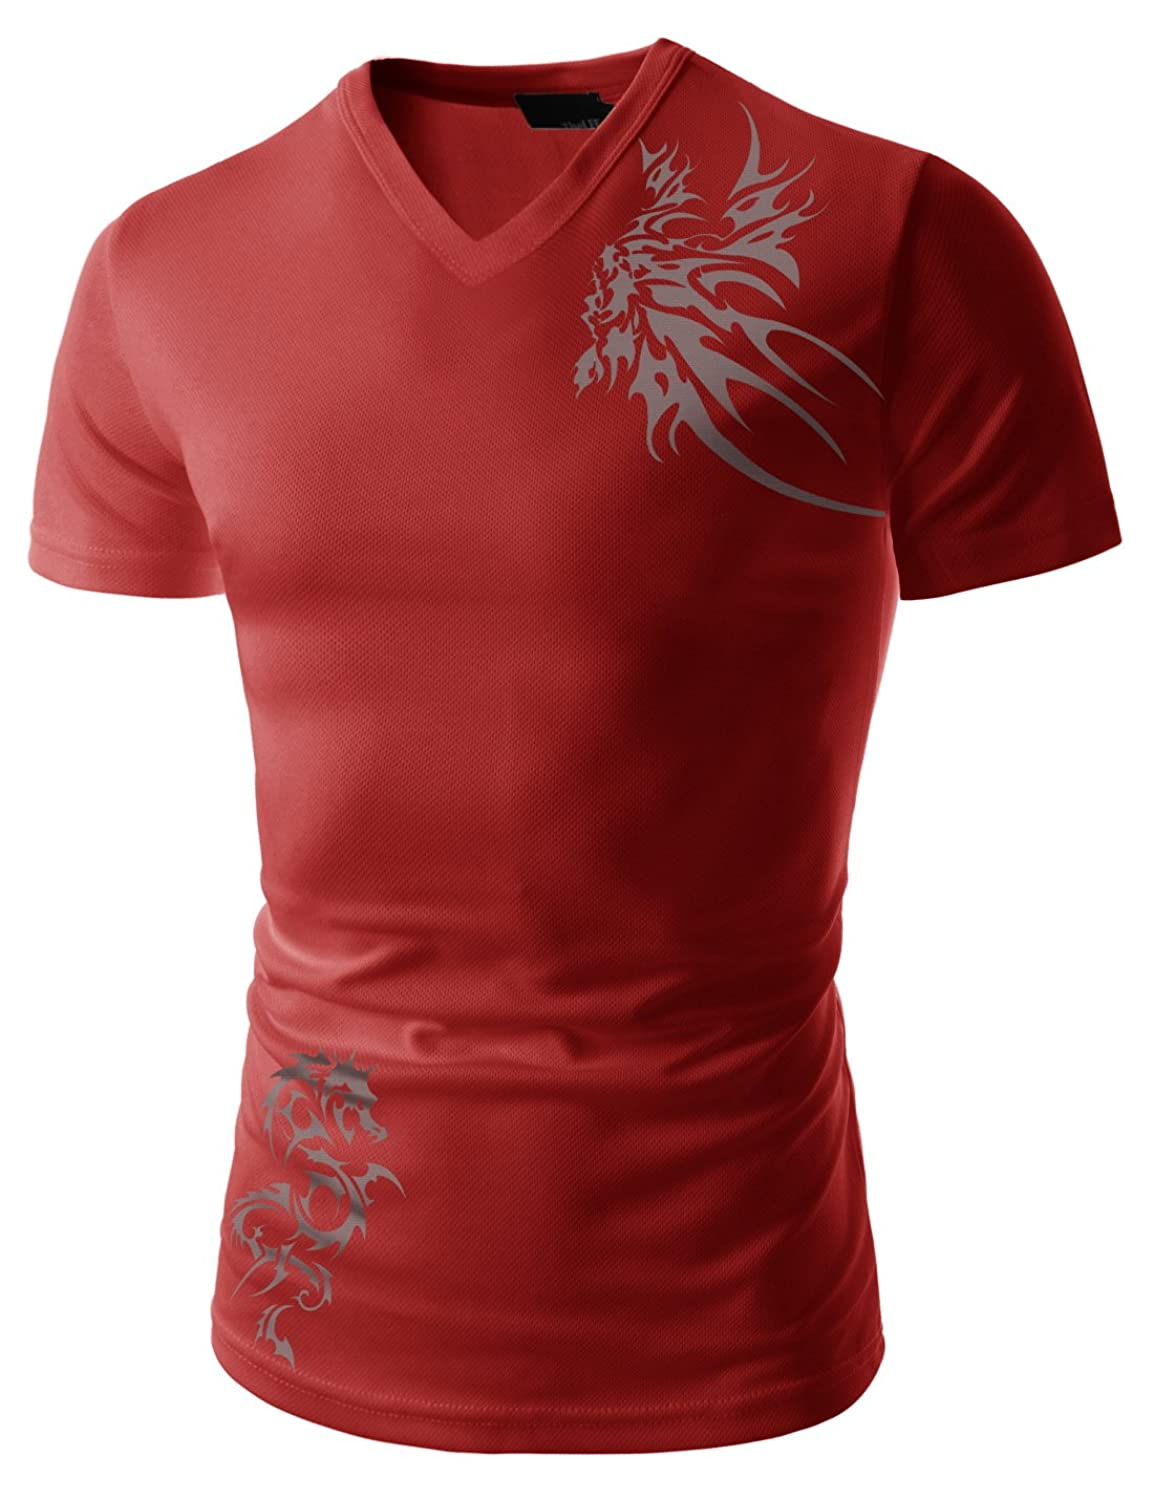 Mens Slim Fit Coolmesh Fabric Tattoo Printing Sports V-neck Tshirts